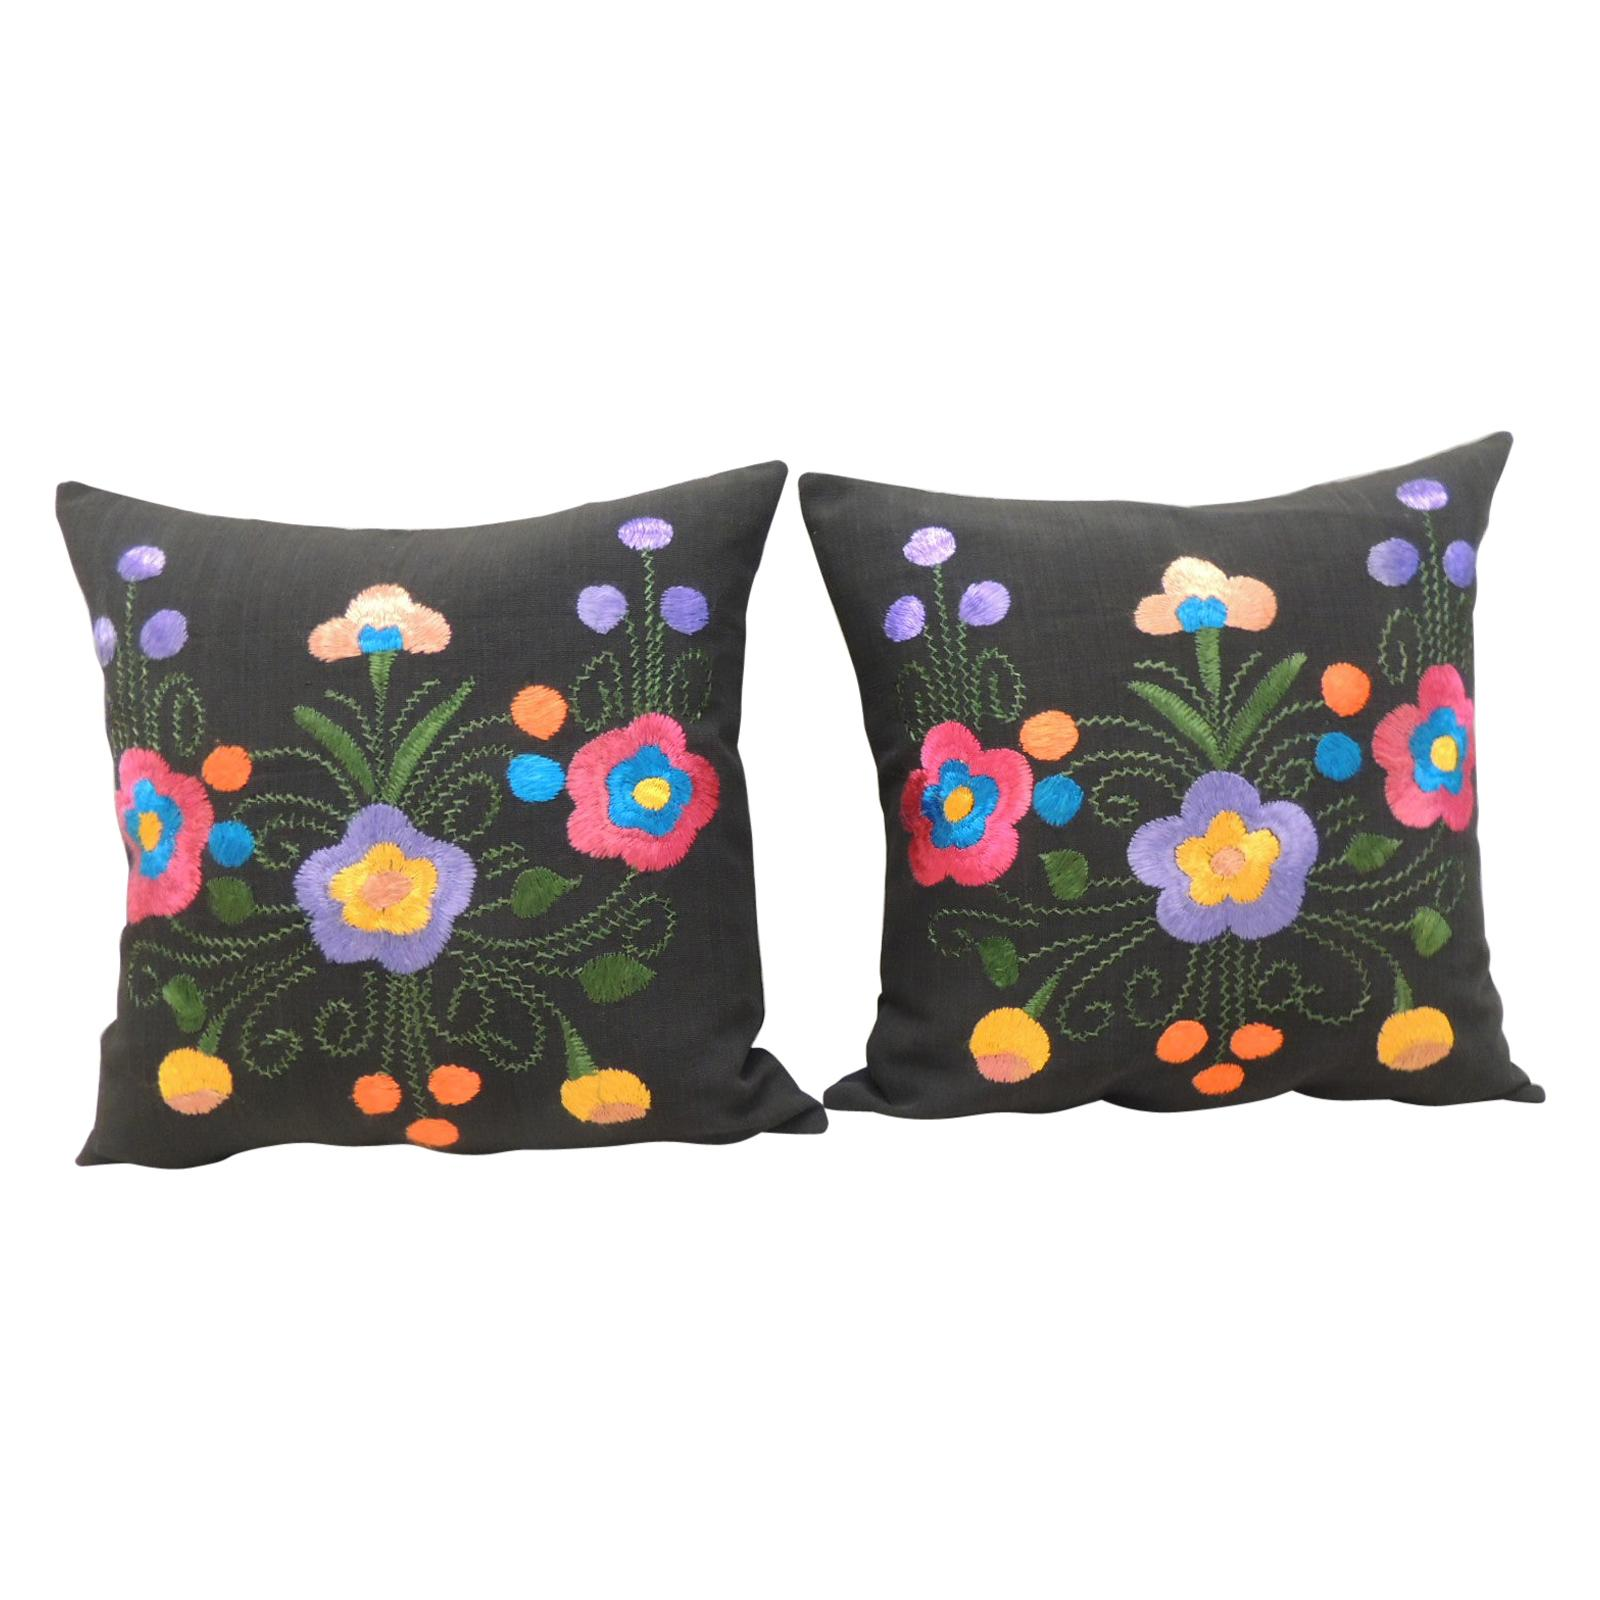 Pair of Blue and Pink Square Decorative Pillows